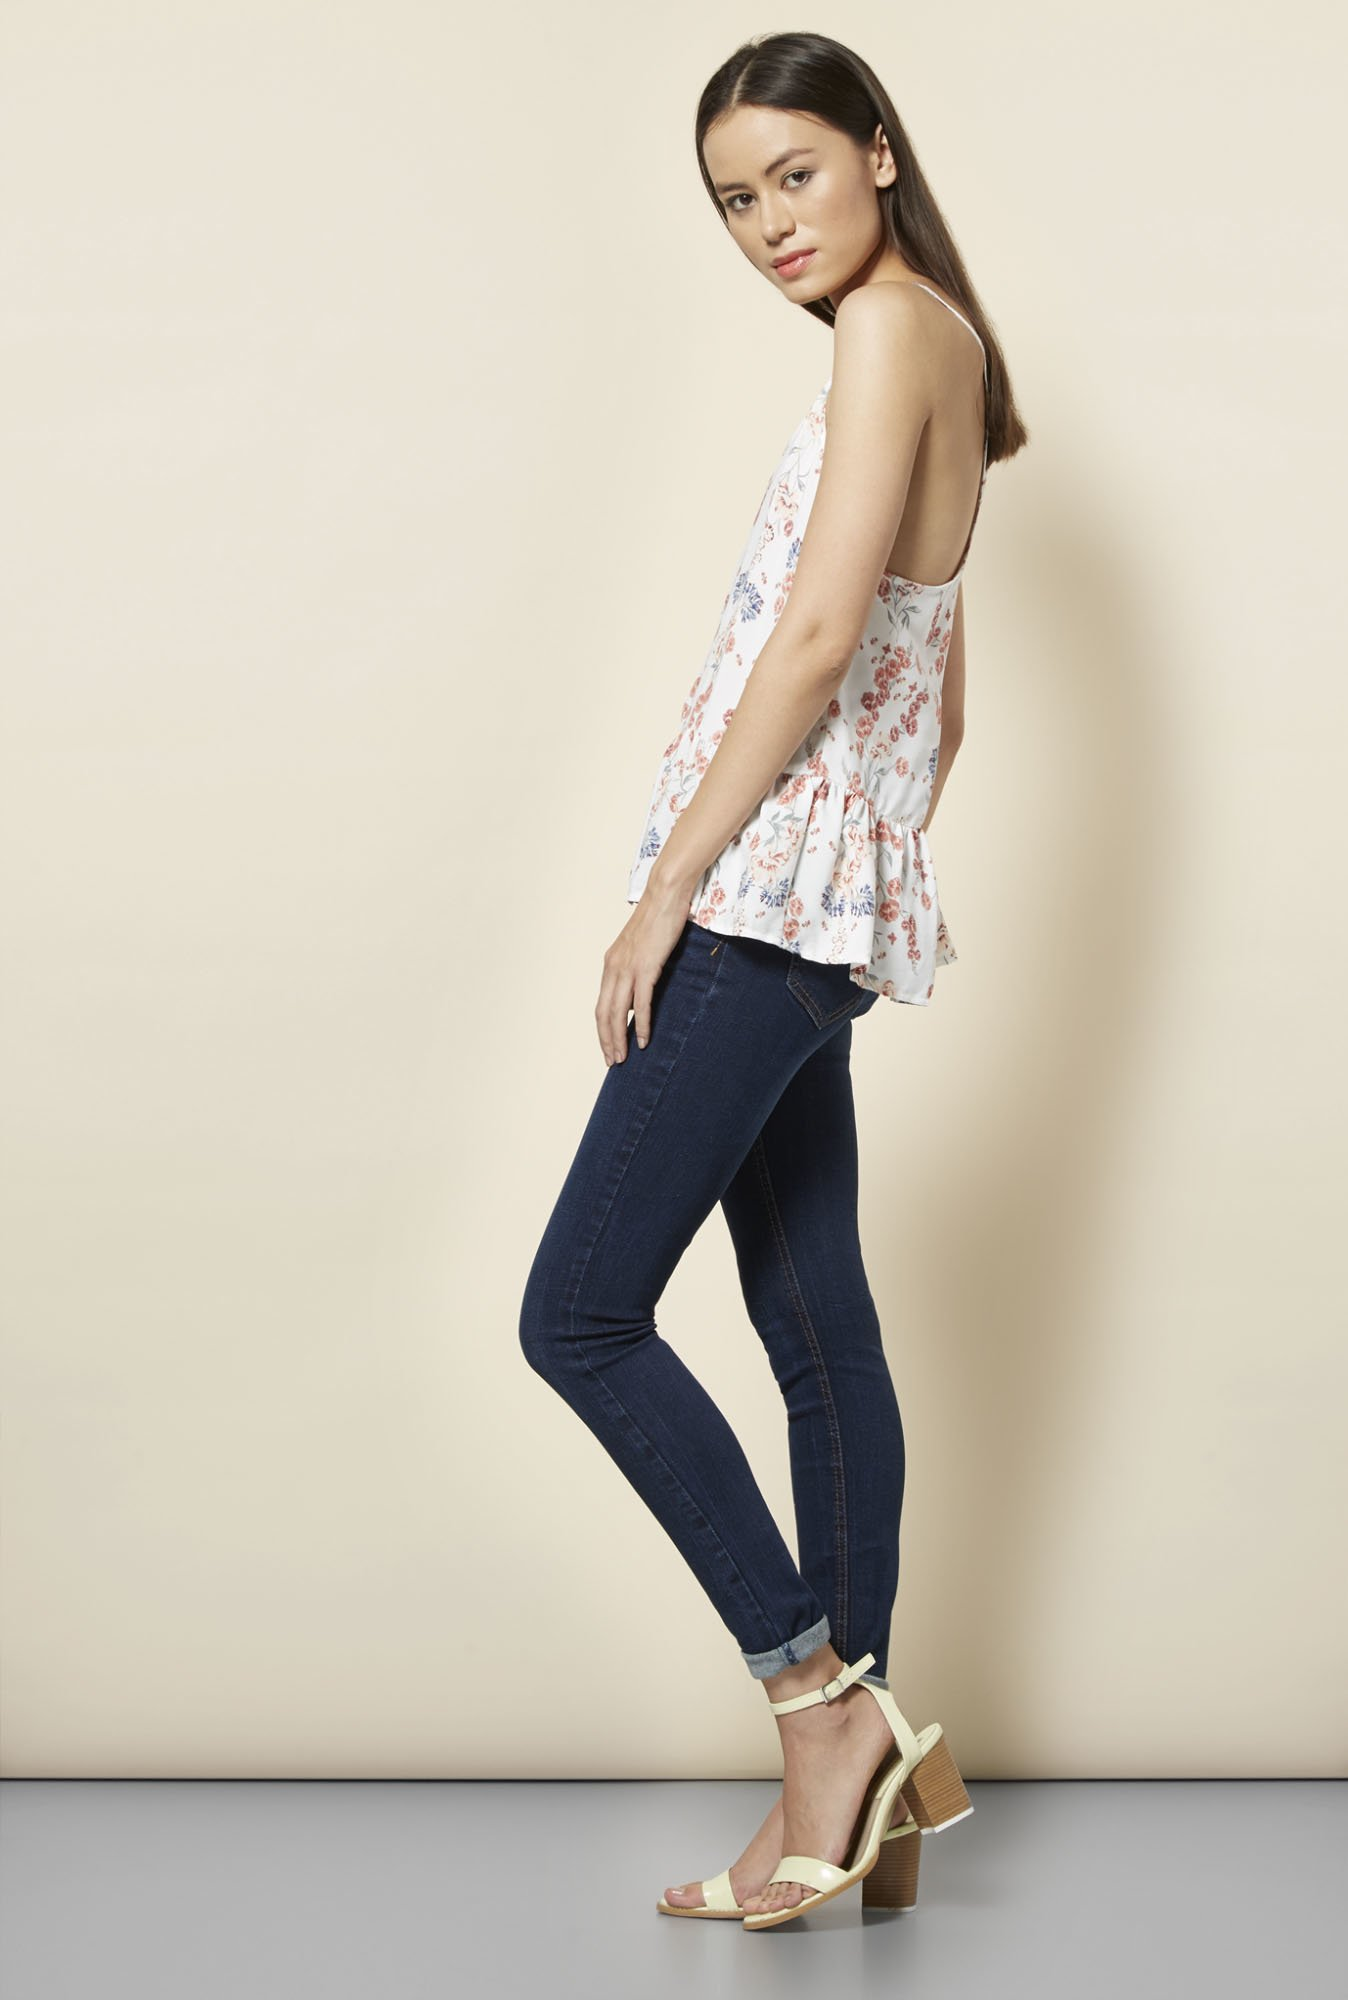 New Look White Floral Print Peplum Top